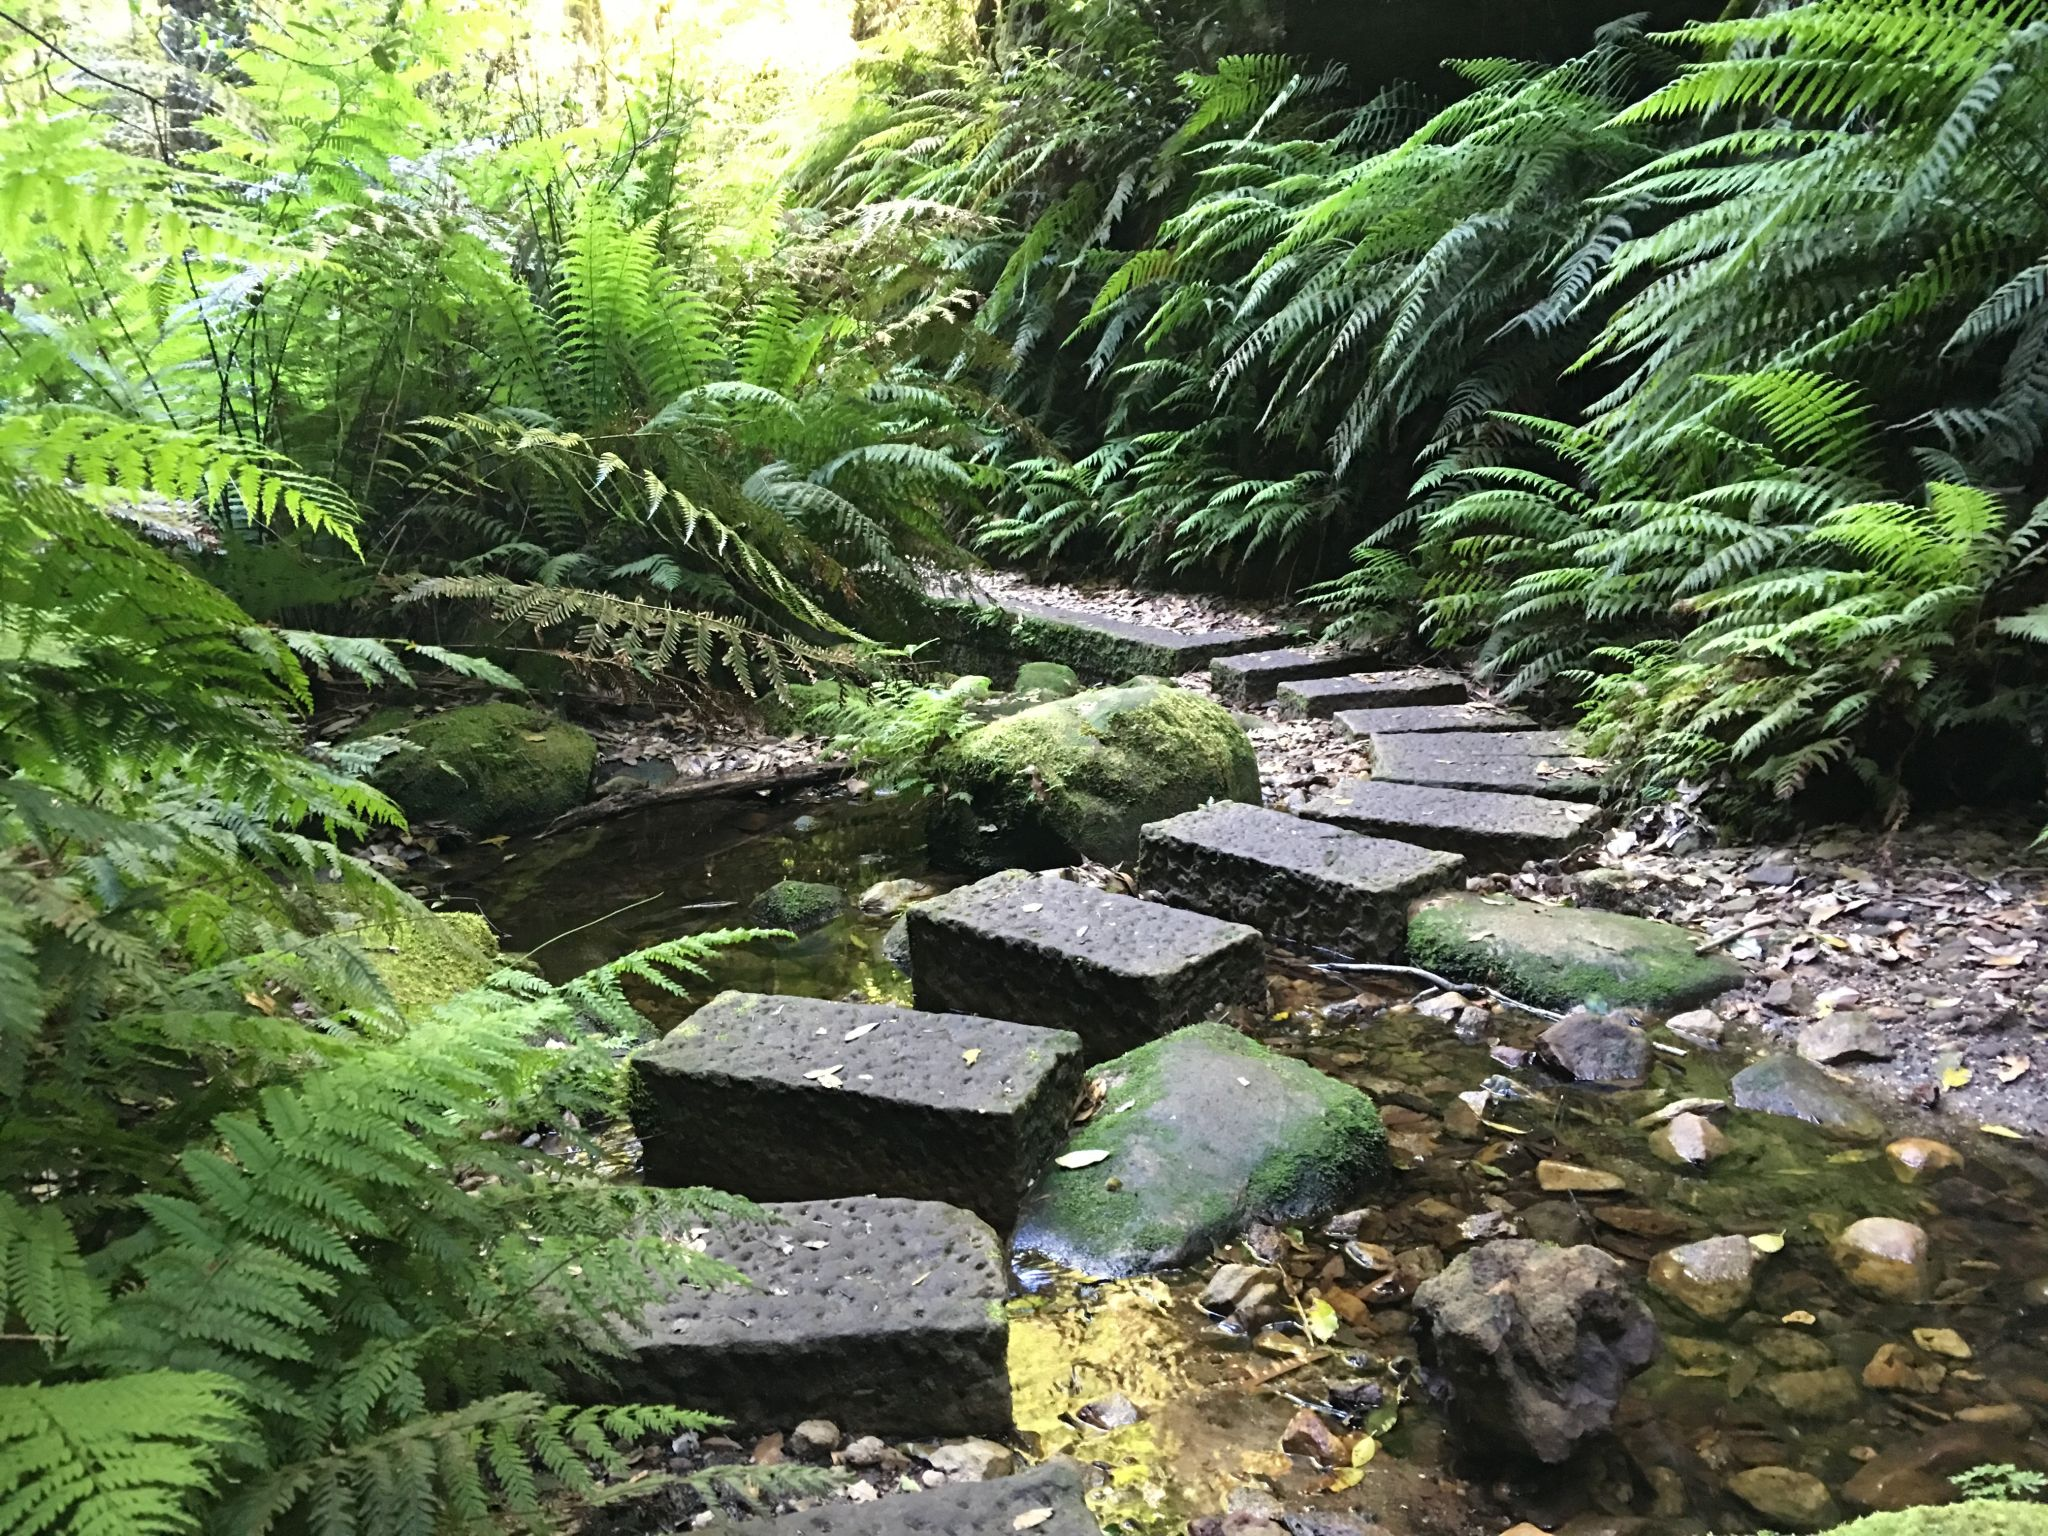 Stepping stones through a stream